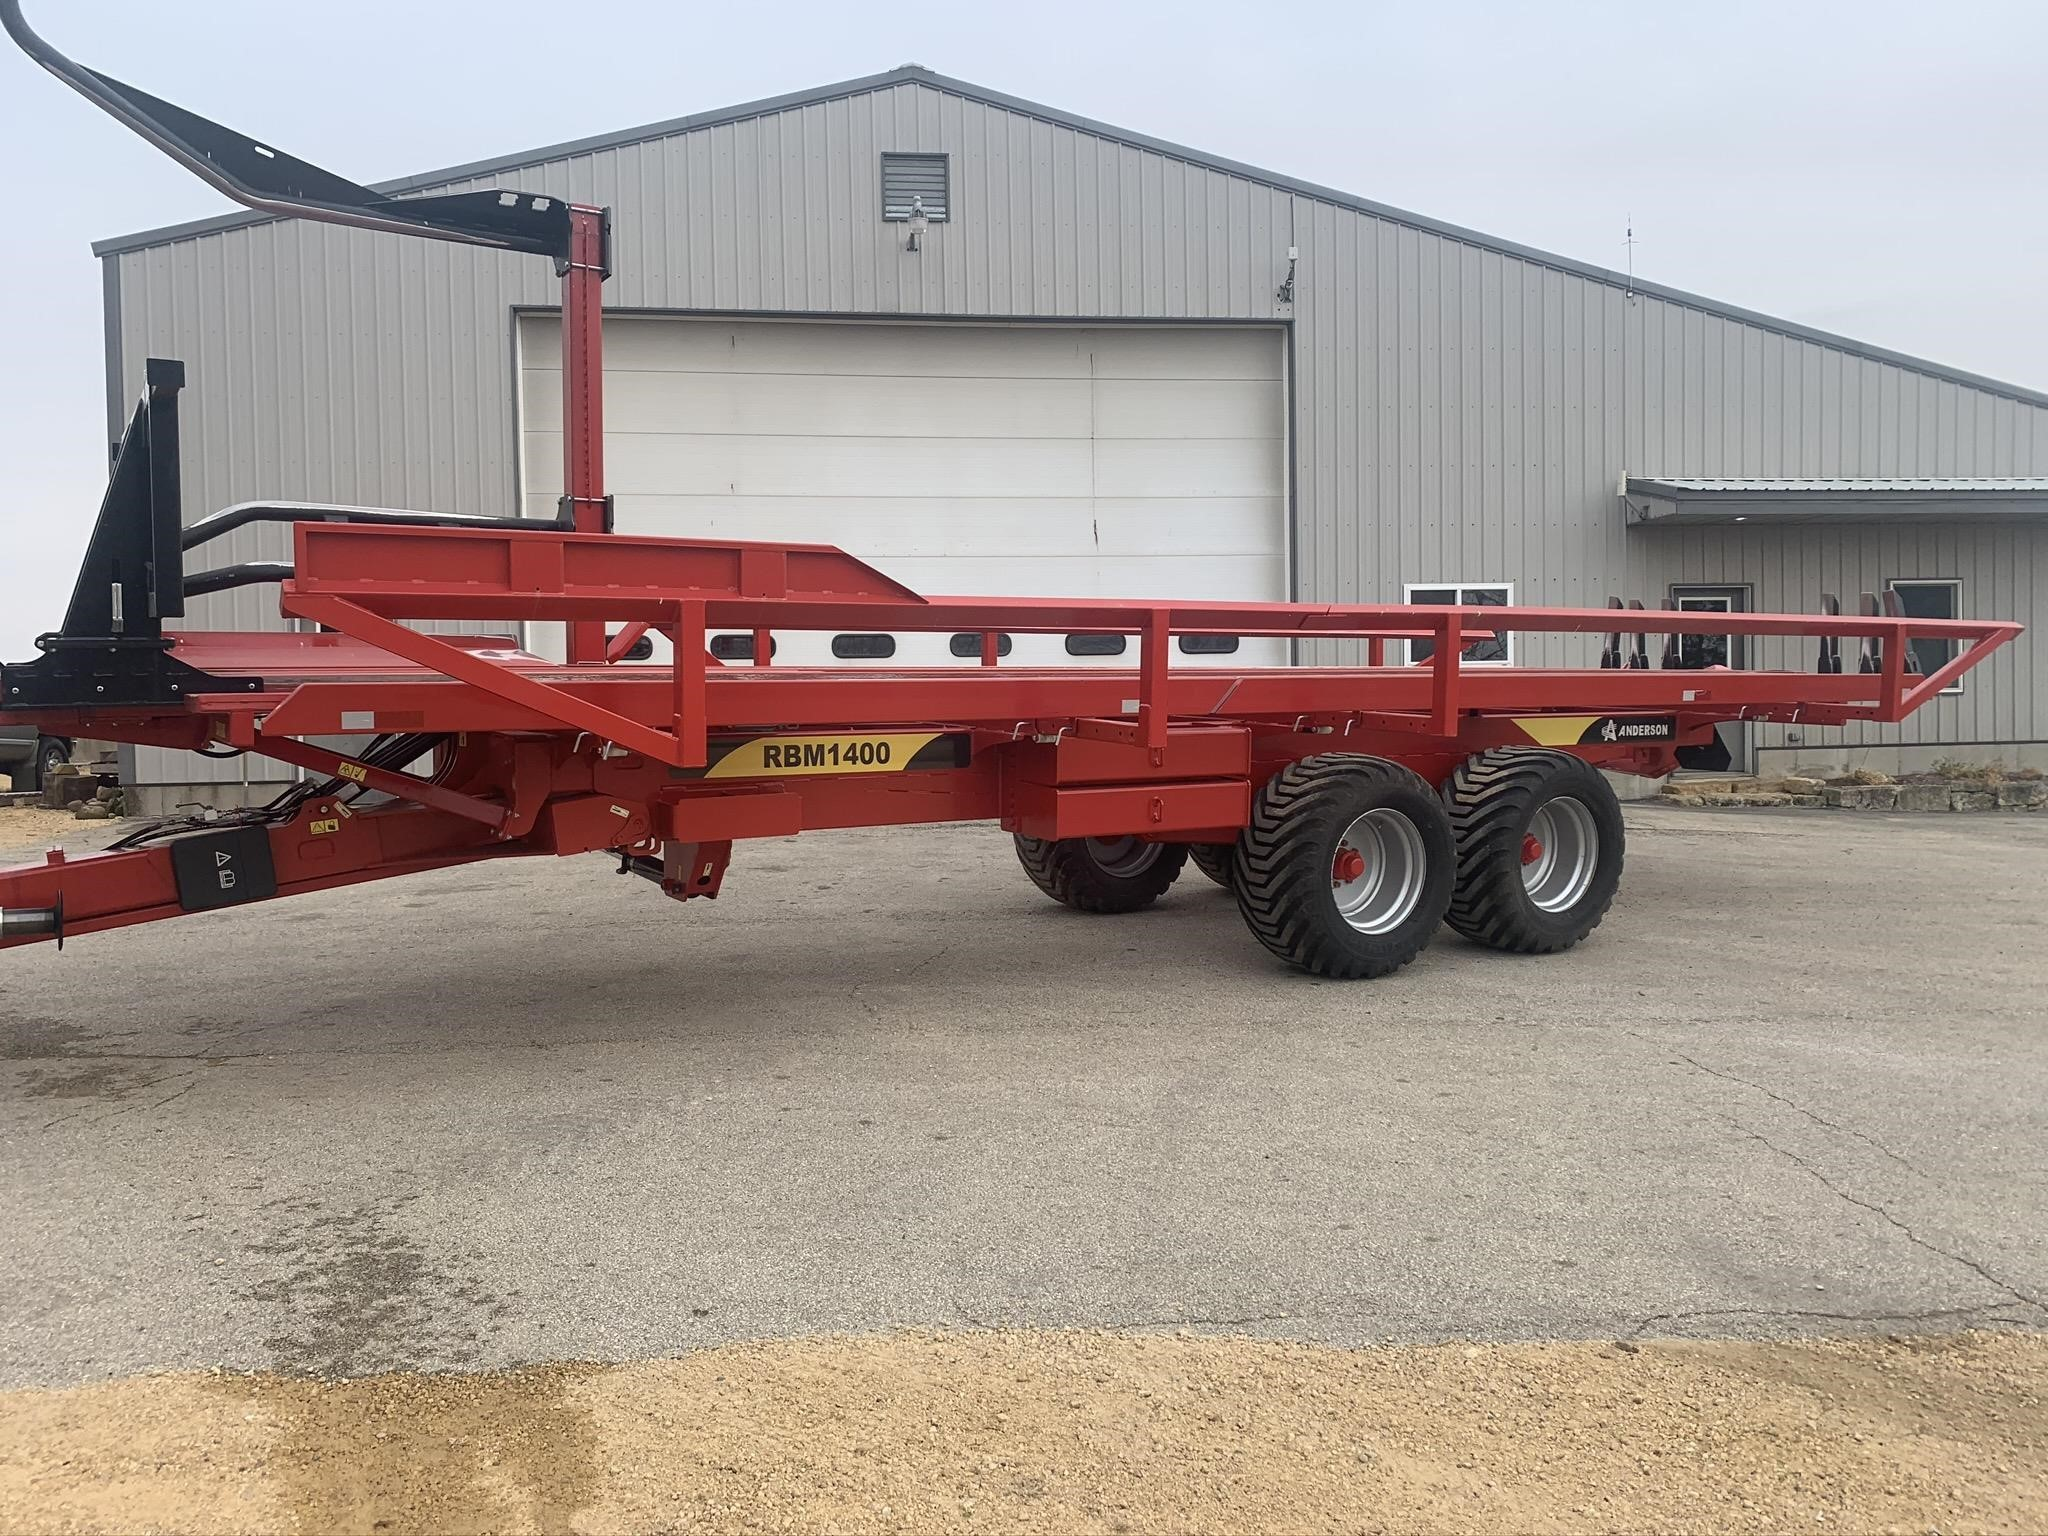 2020 Anderson RBM1400 Hay Stacking Equipment